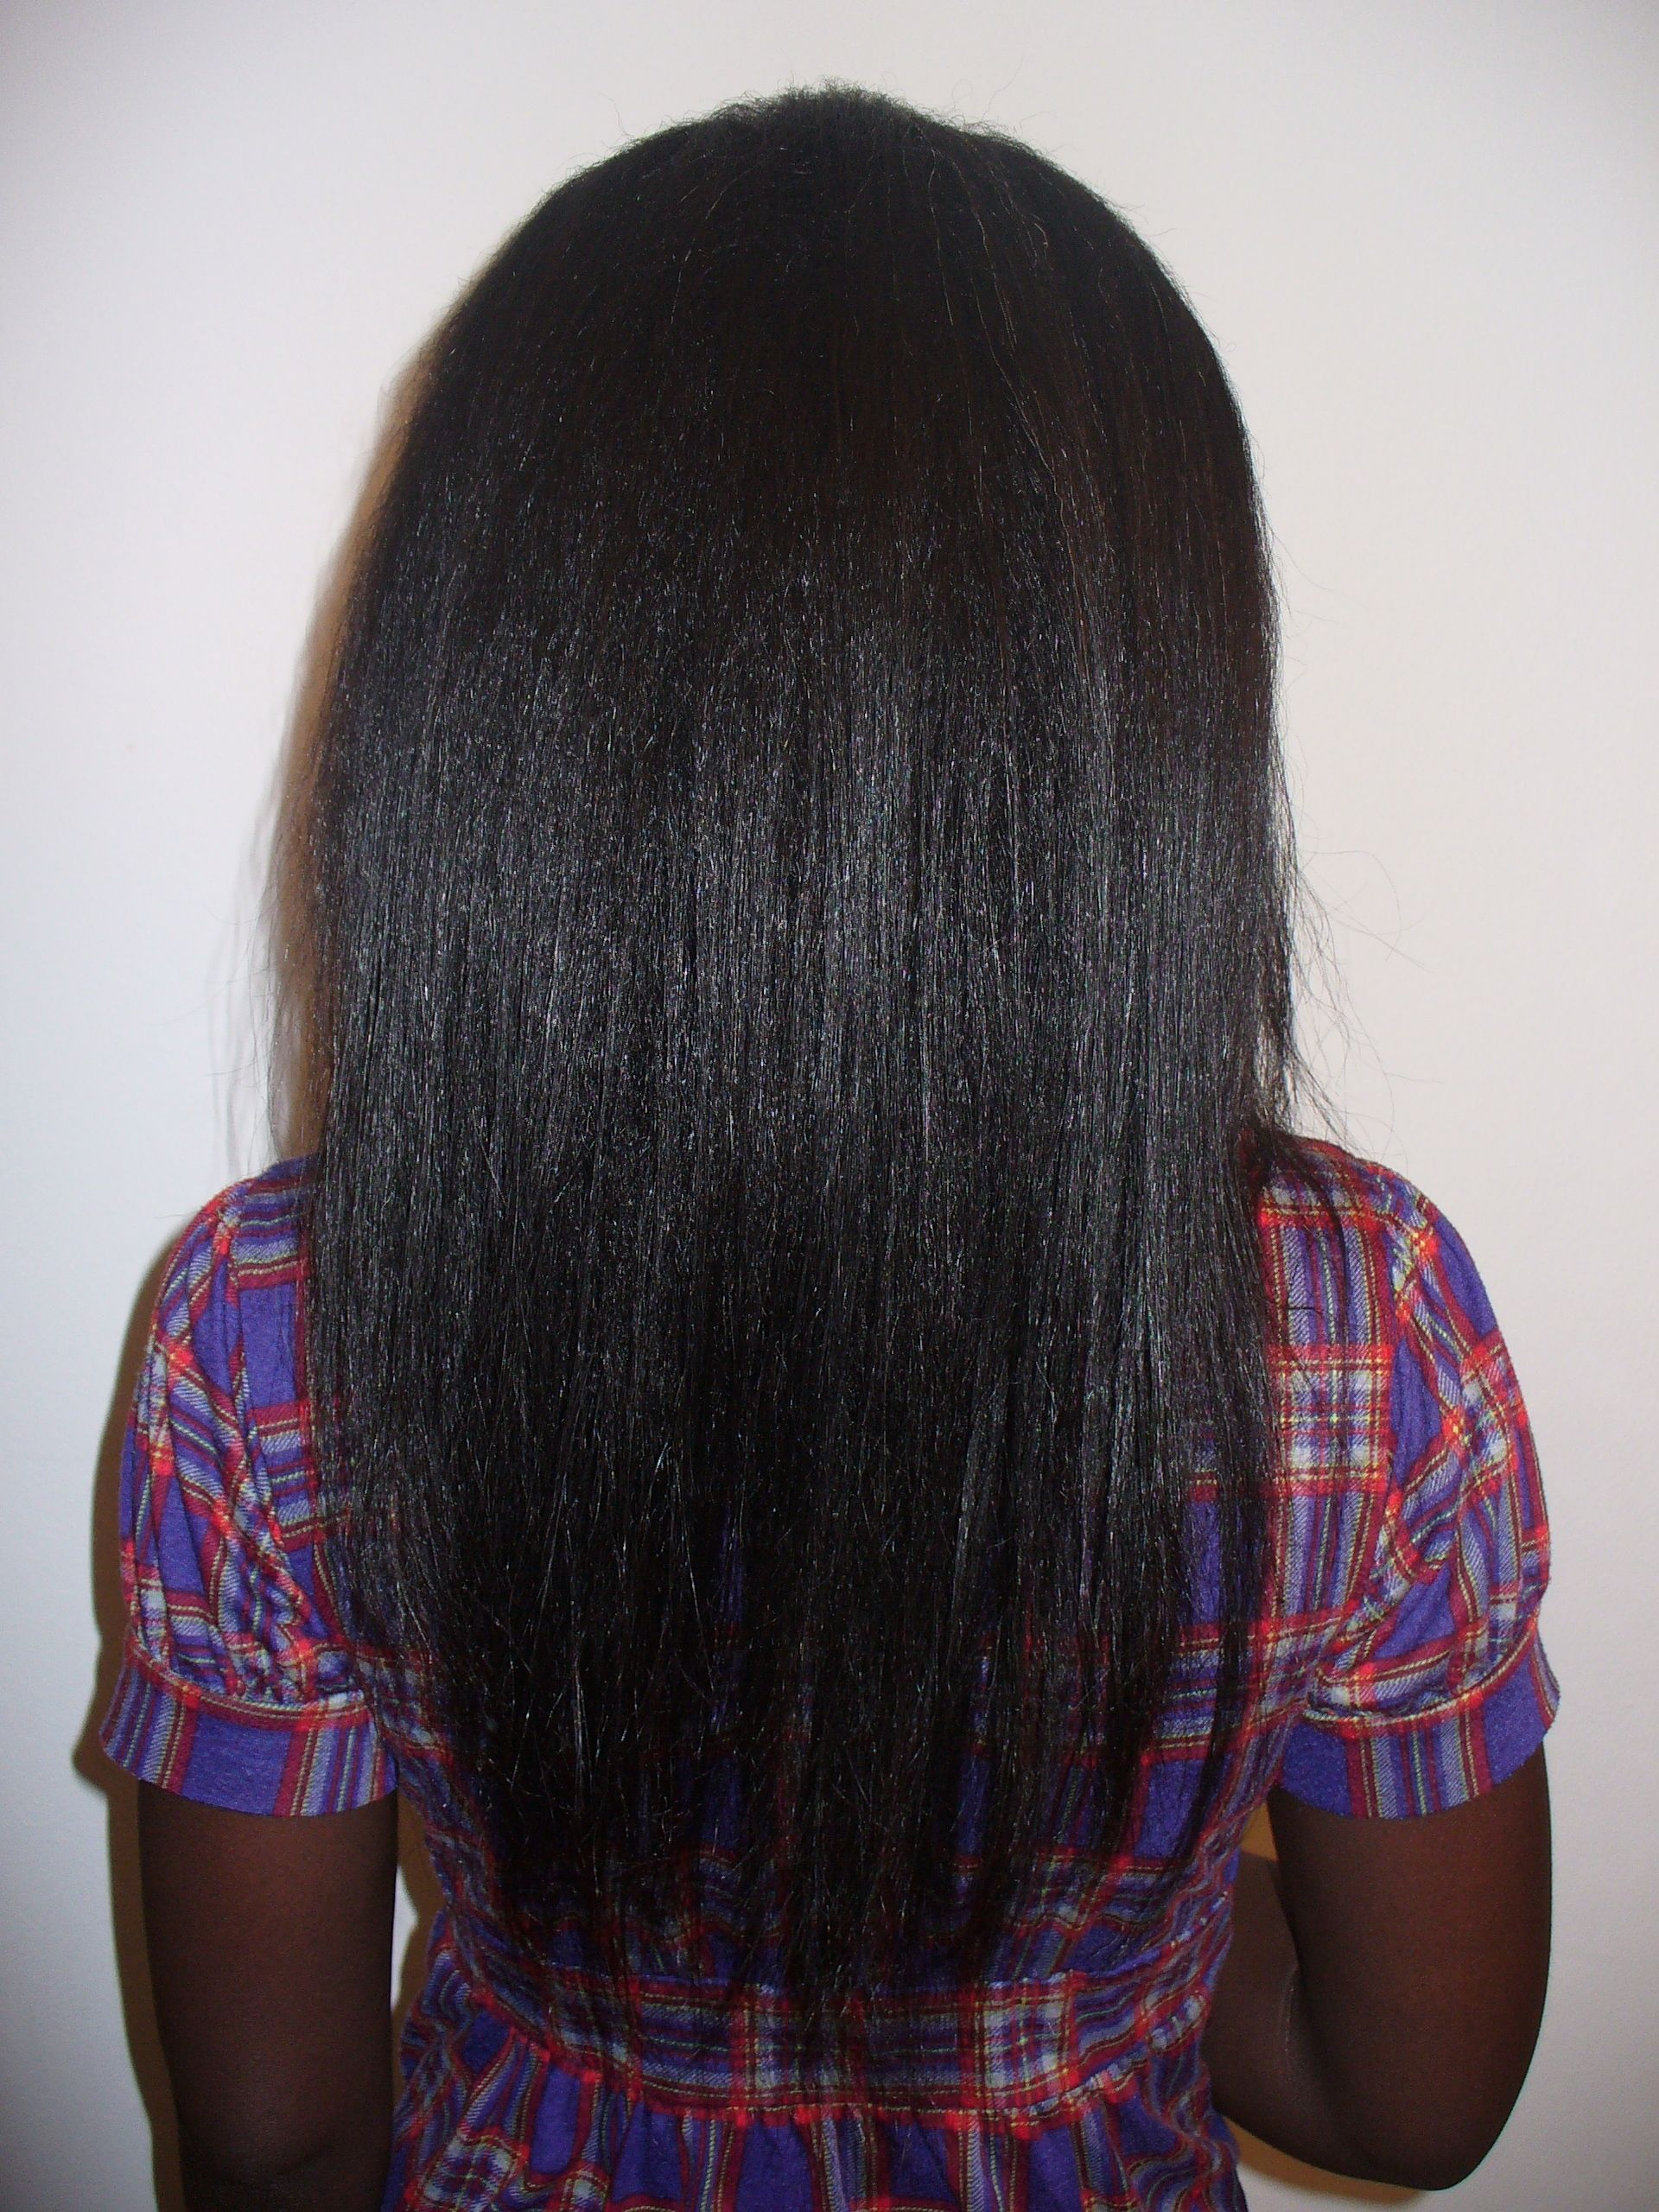 Relaxed Hair Growth | Started at a damaged shoulder length ...